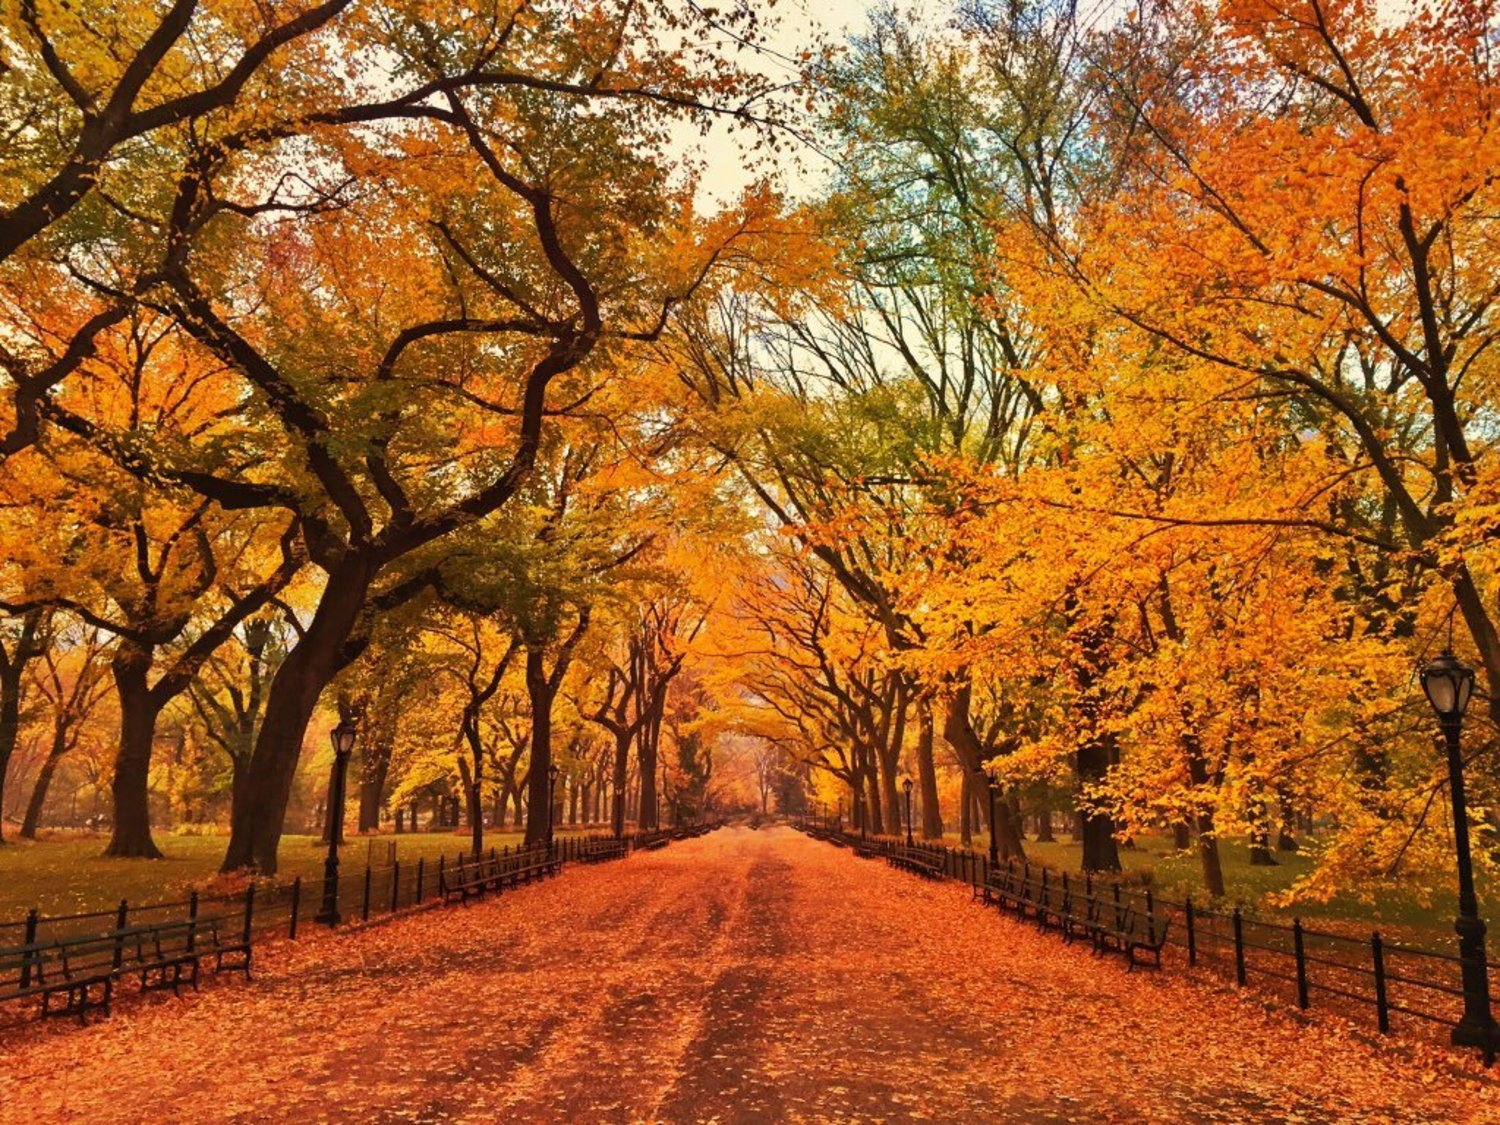 Fall in Central Park's mall #NYC https://t.co/qwGPRF9ba4